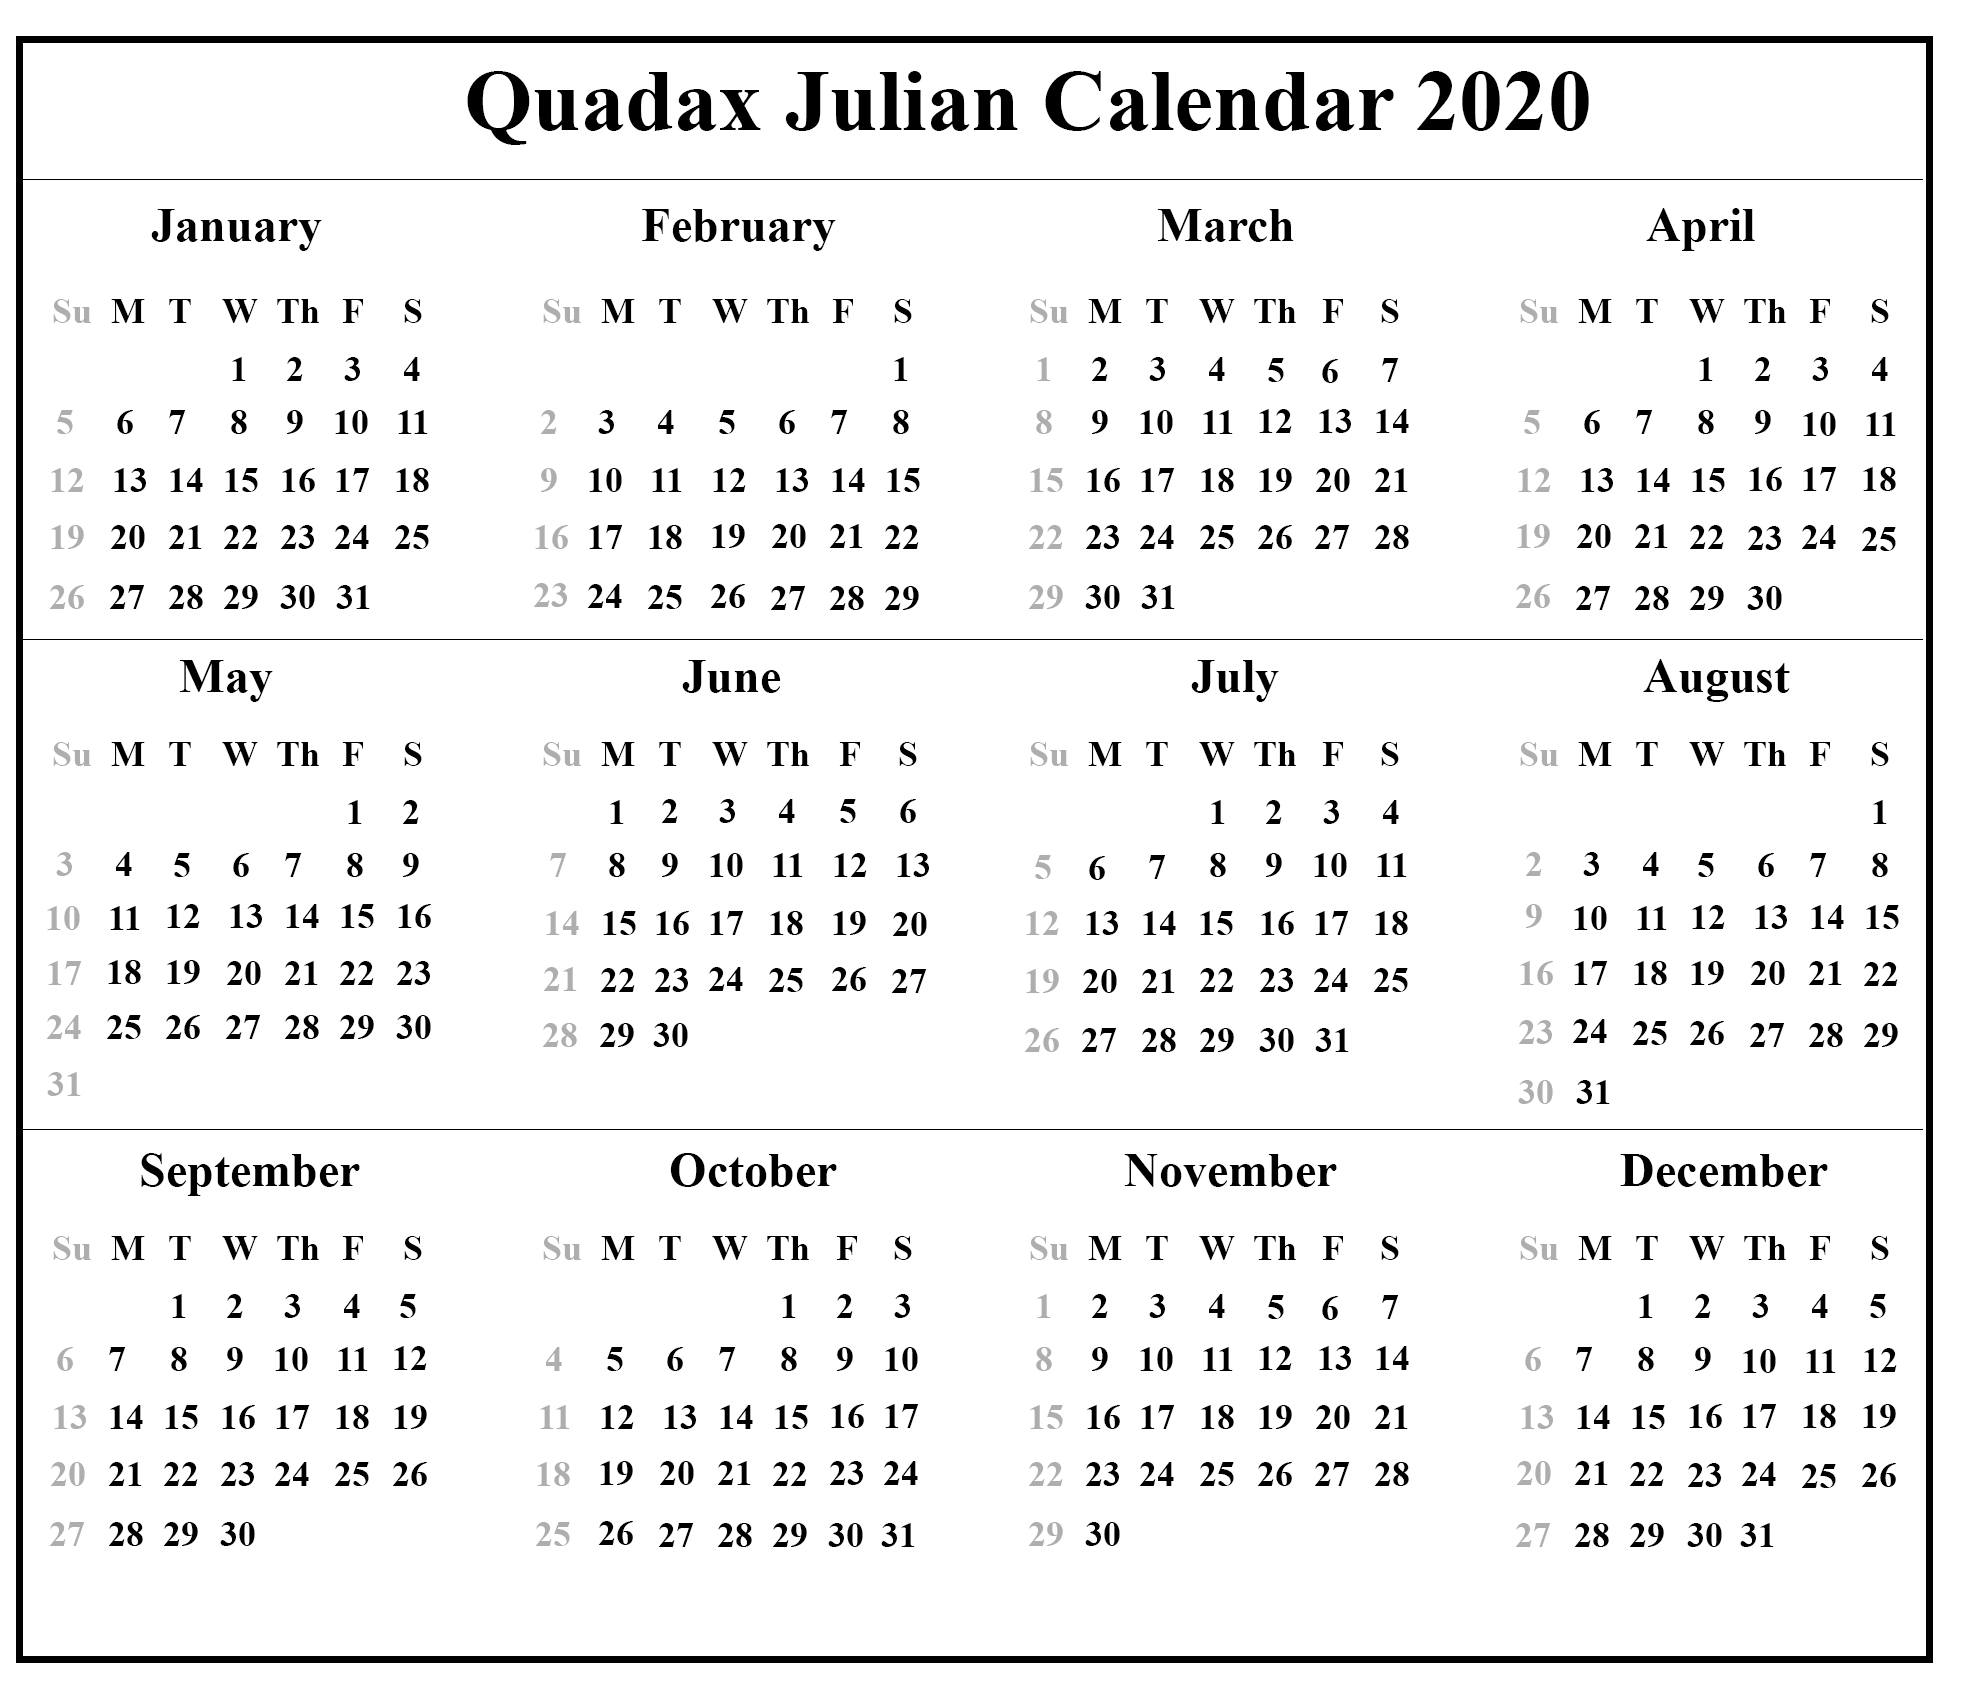 Https://e-W-Trading/march-Quotes-For-Calendars/ 2019-08  365 Day Julian Calendar 2020